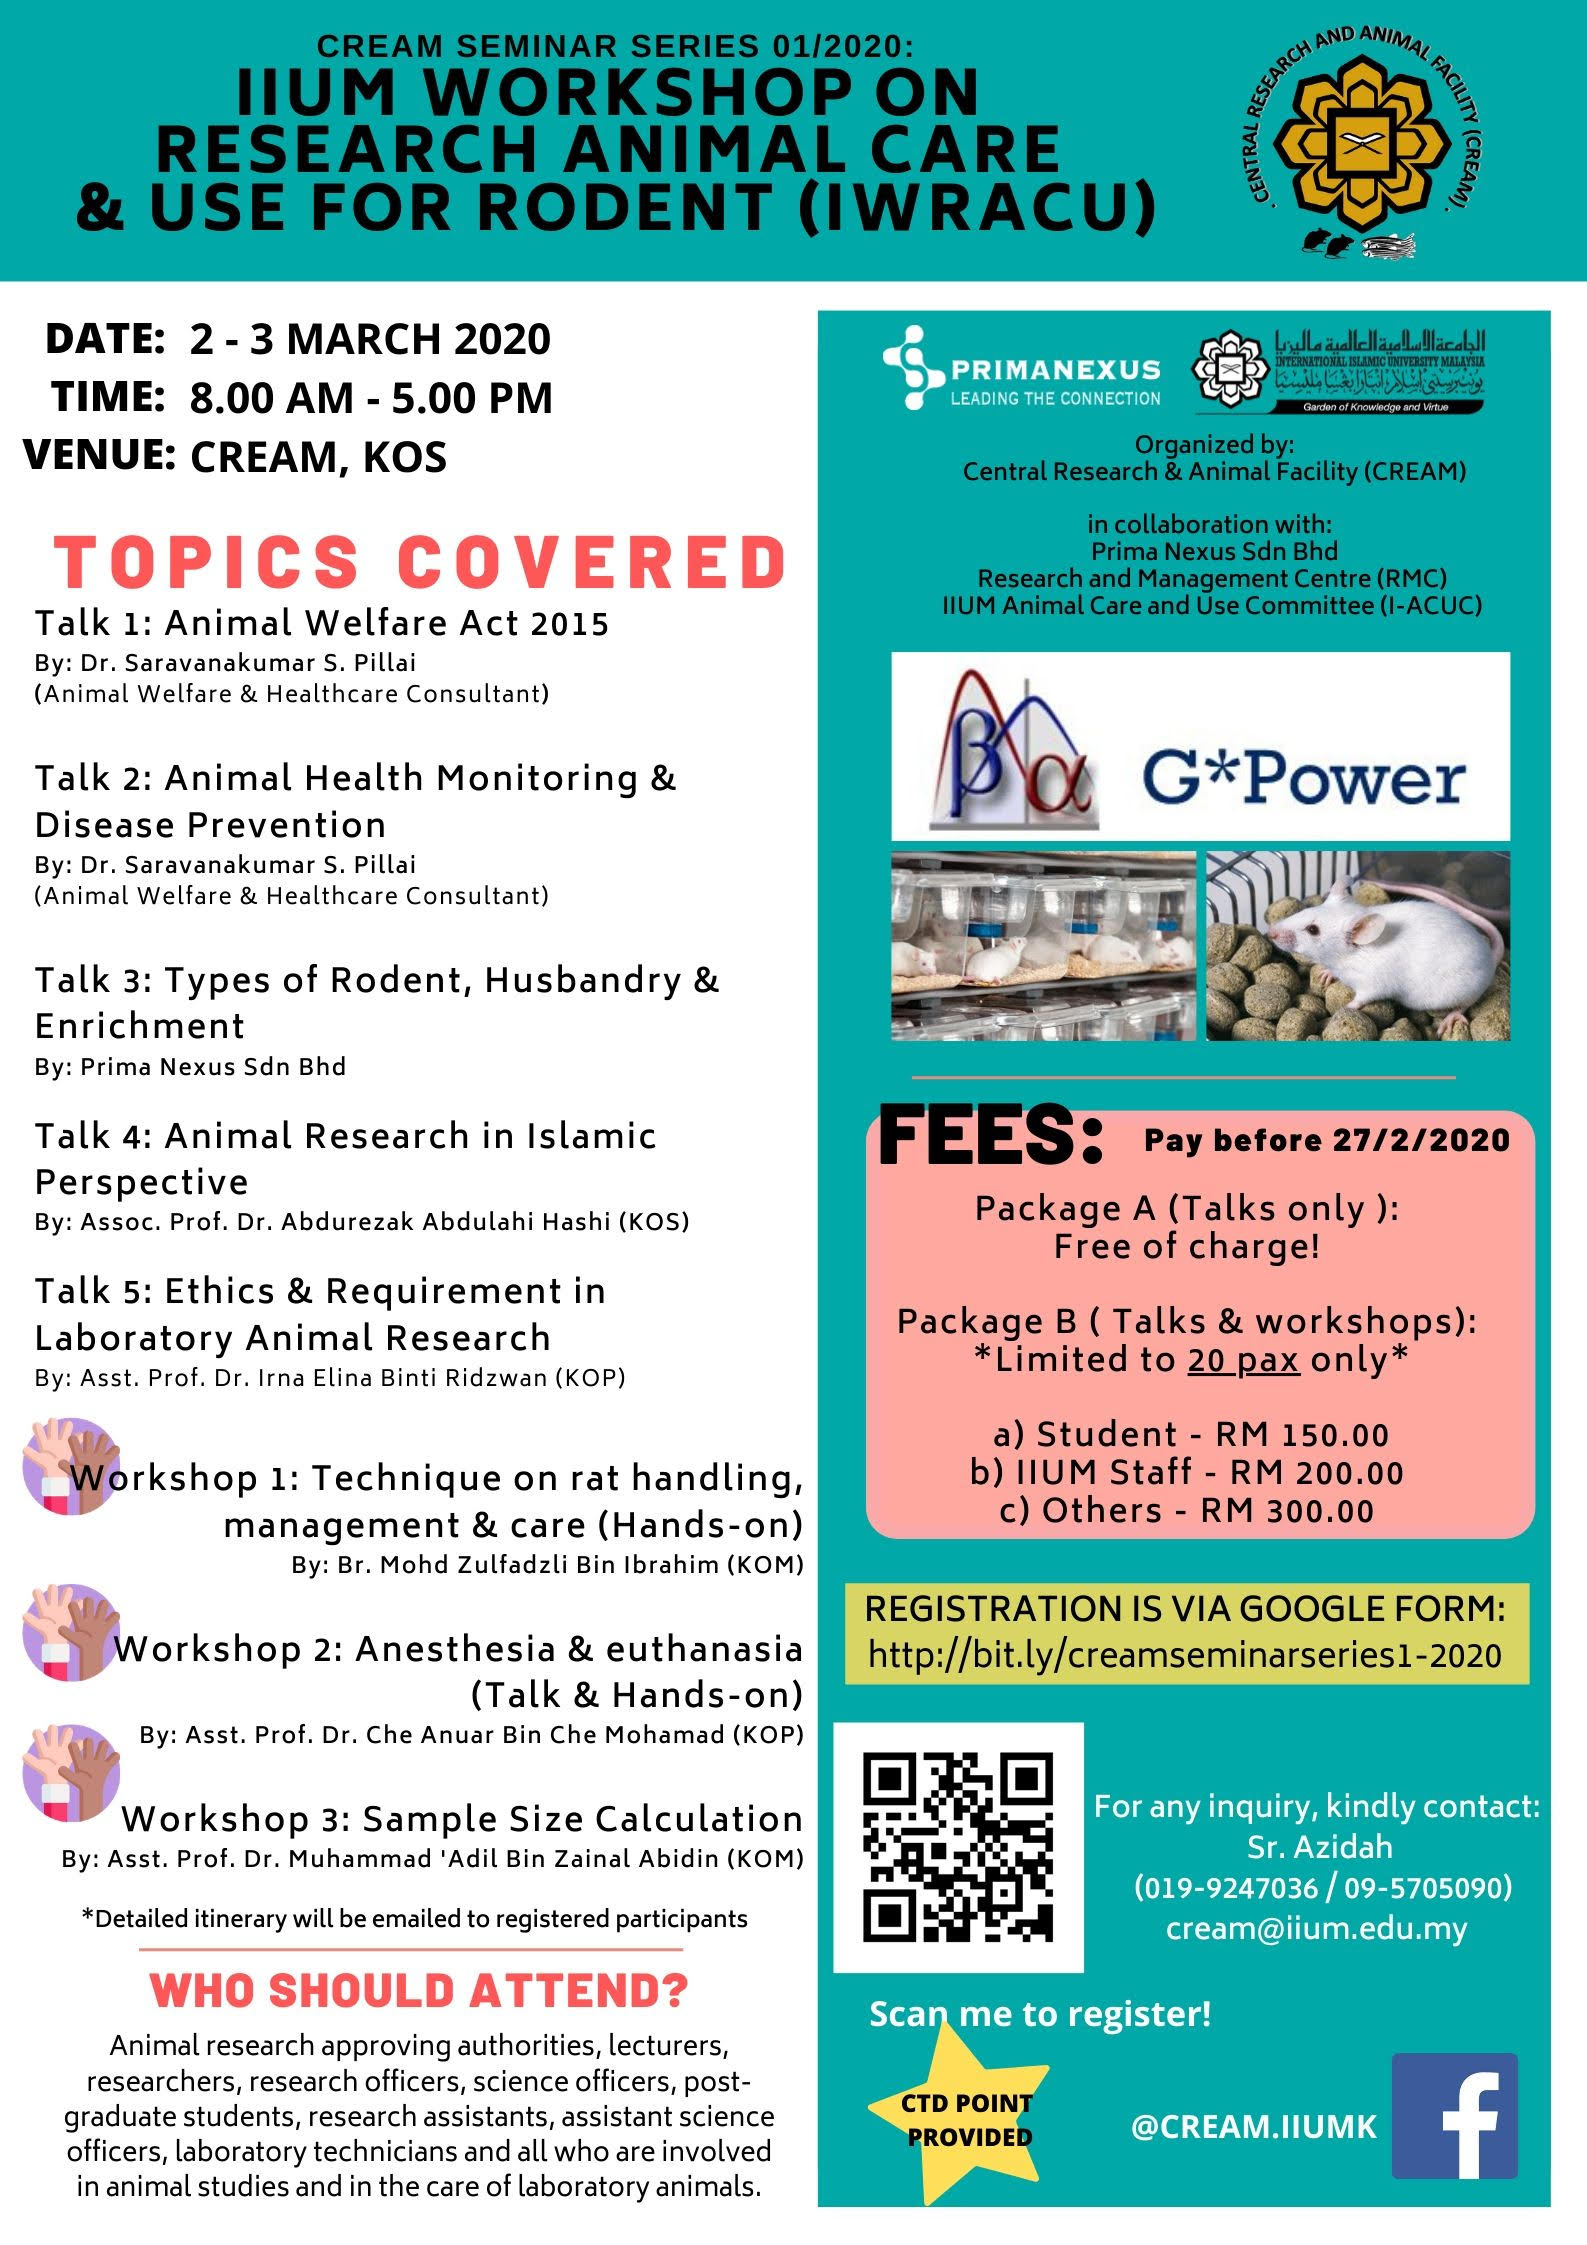 IIUM WORKSHOP ON RESEARCH ANIMAL CARE AND USE FOR RODENT (IWRACU)